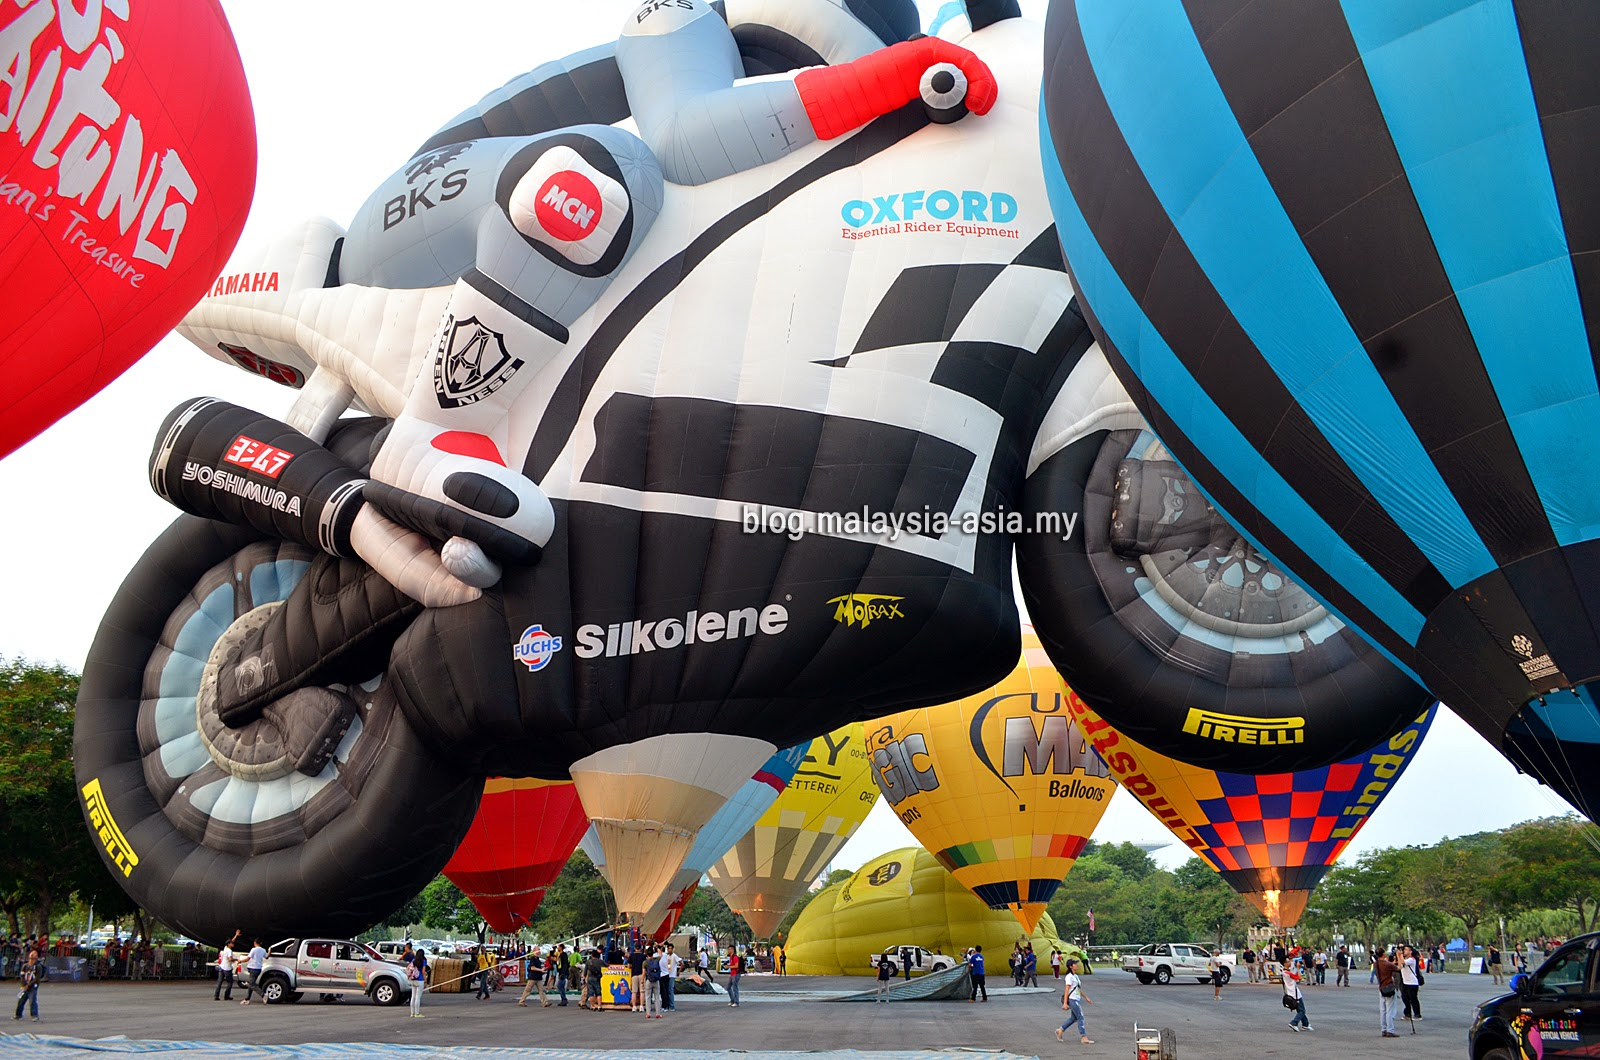 Racing Motorbike Hot Air Balloon Putrajaya